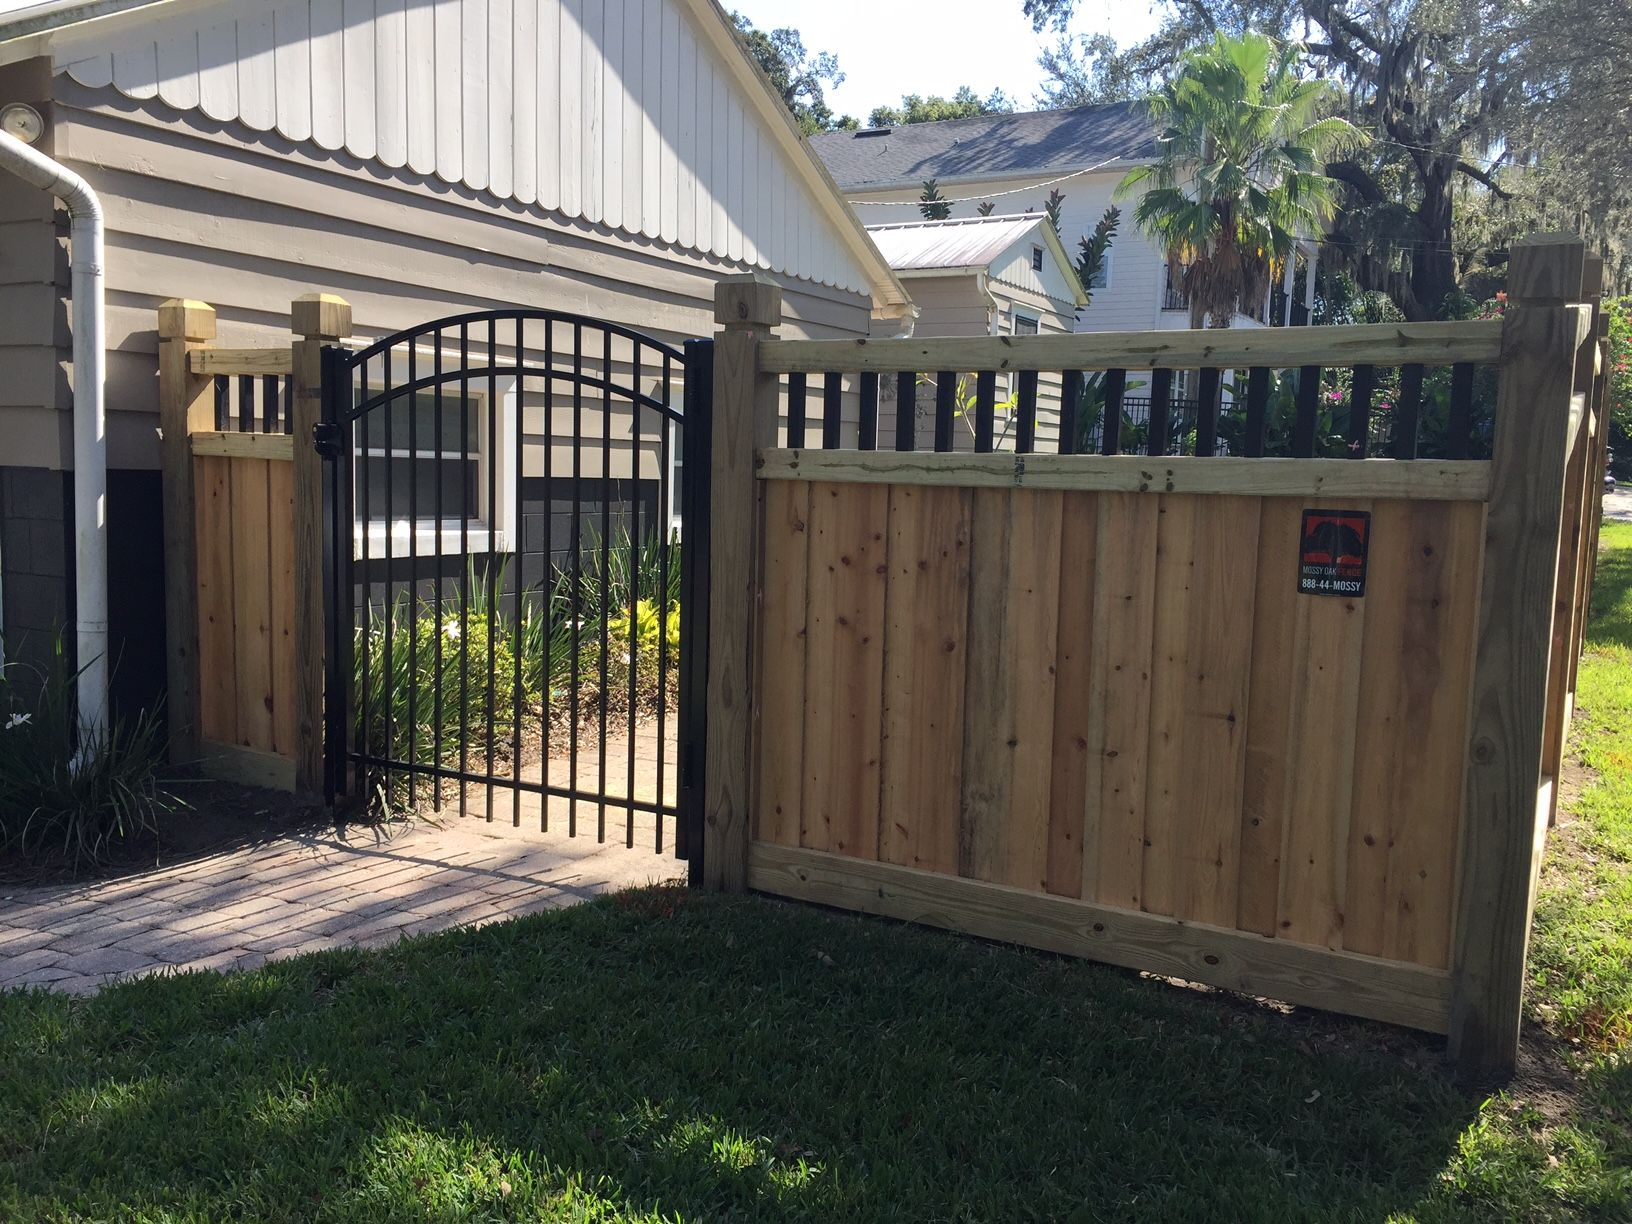 Mossy Oak Fence | Wood privacy fence, Fence design, Metal ... on Gate Color Ideas  id=24104